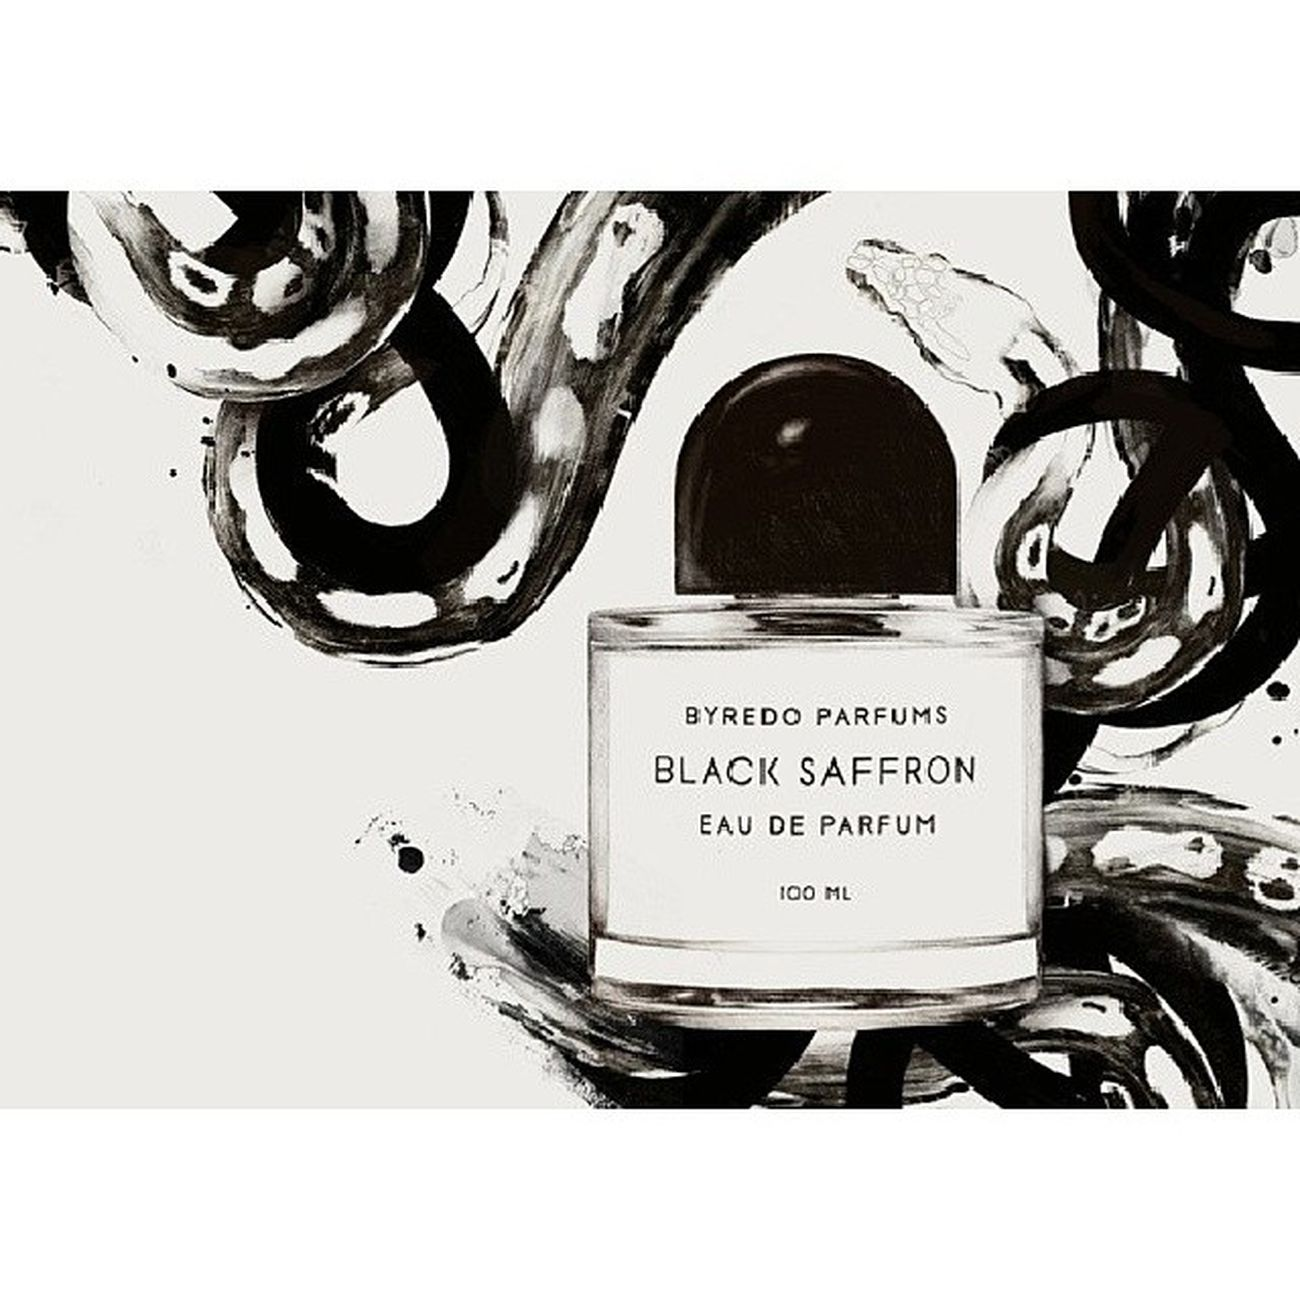 Smoky leather & raspberry saffron/iris love. Byredo Bbloggers